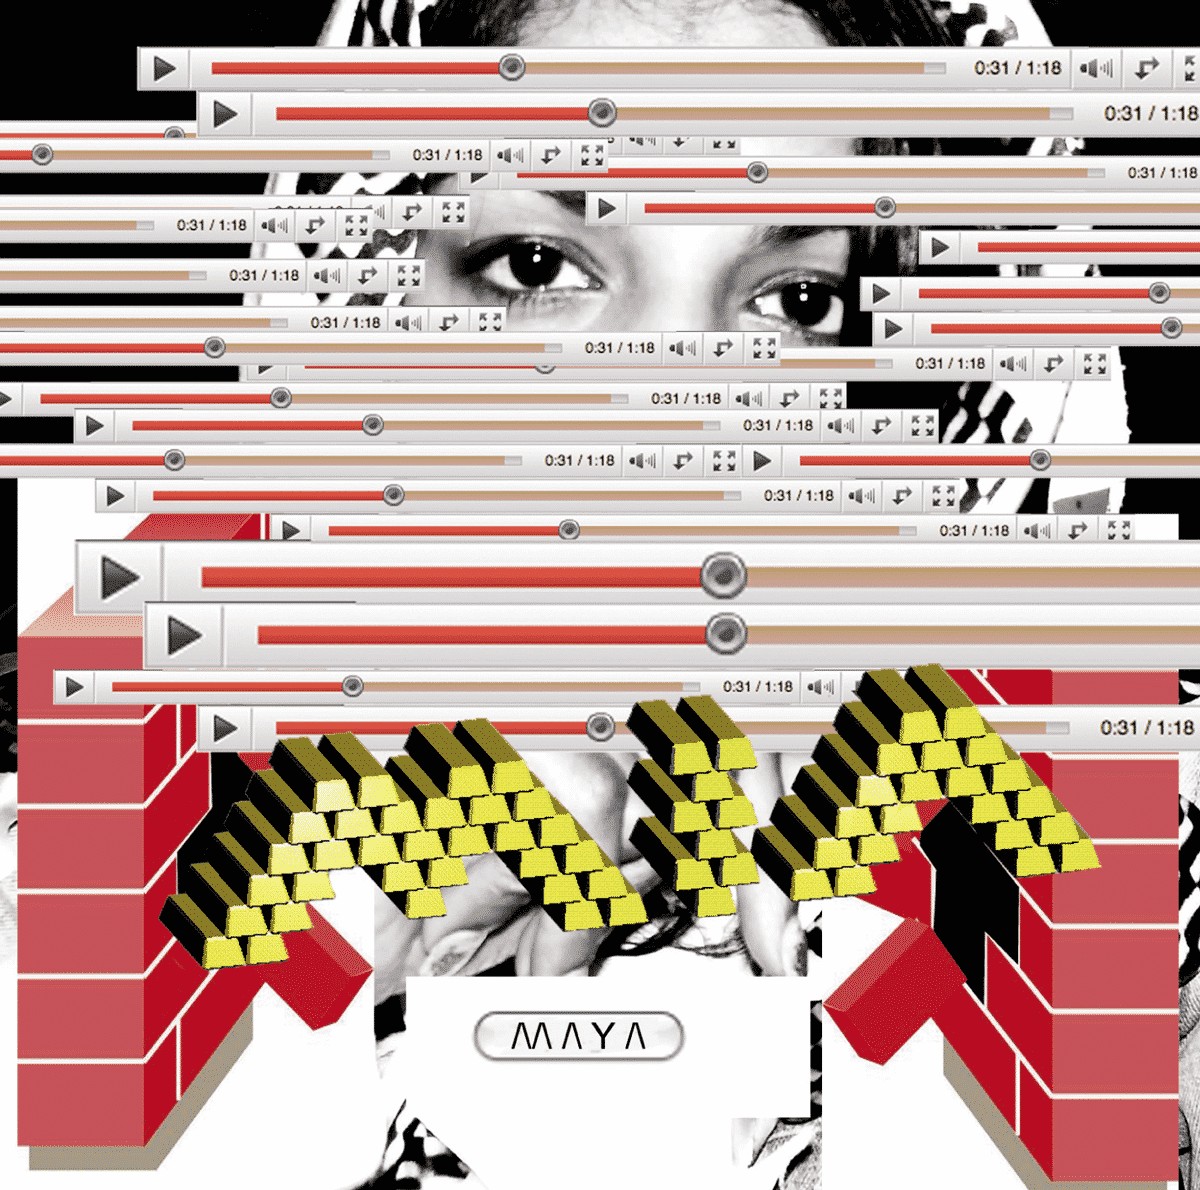 M.I.A's /\/\/\Y/\